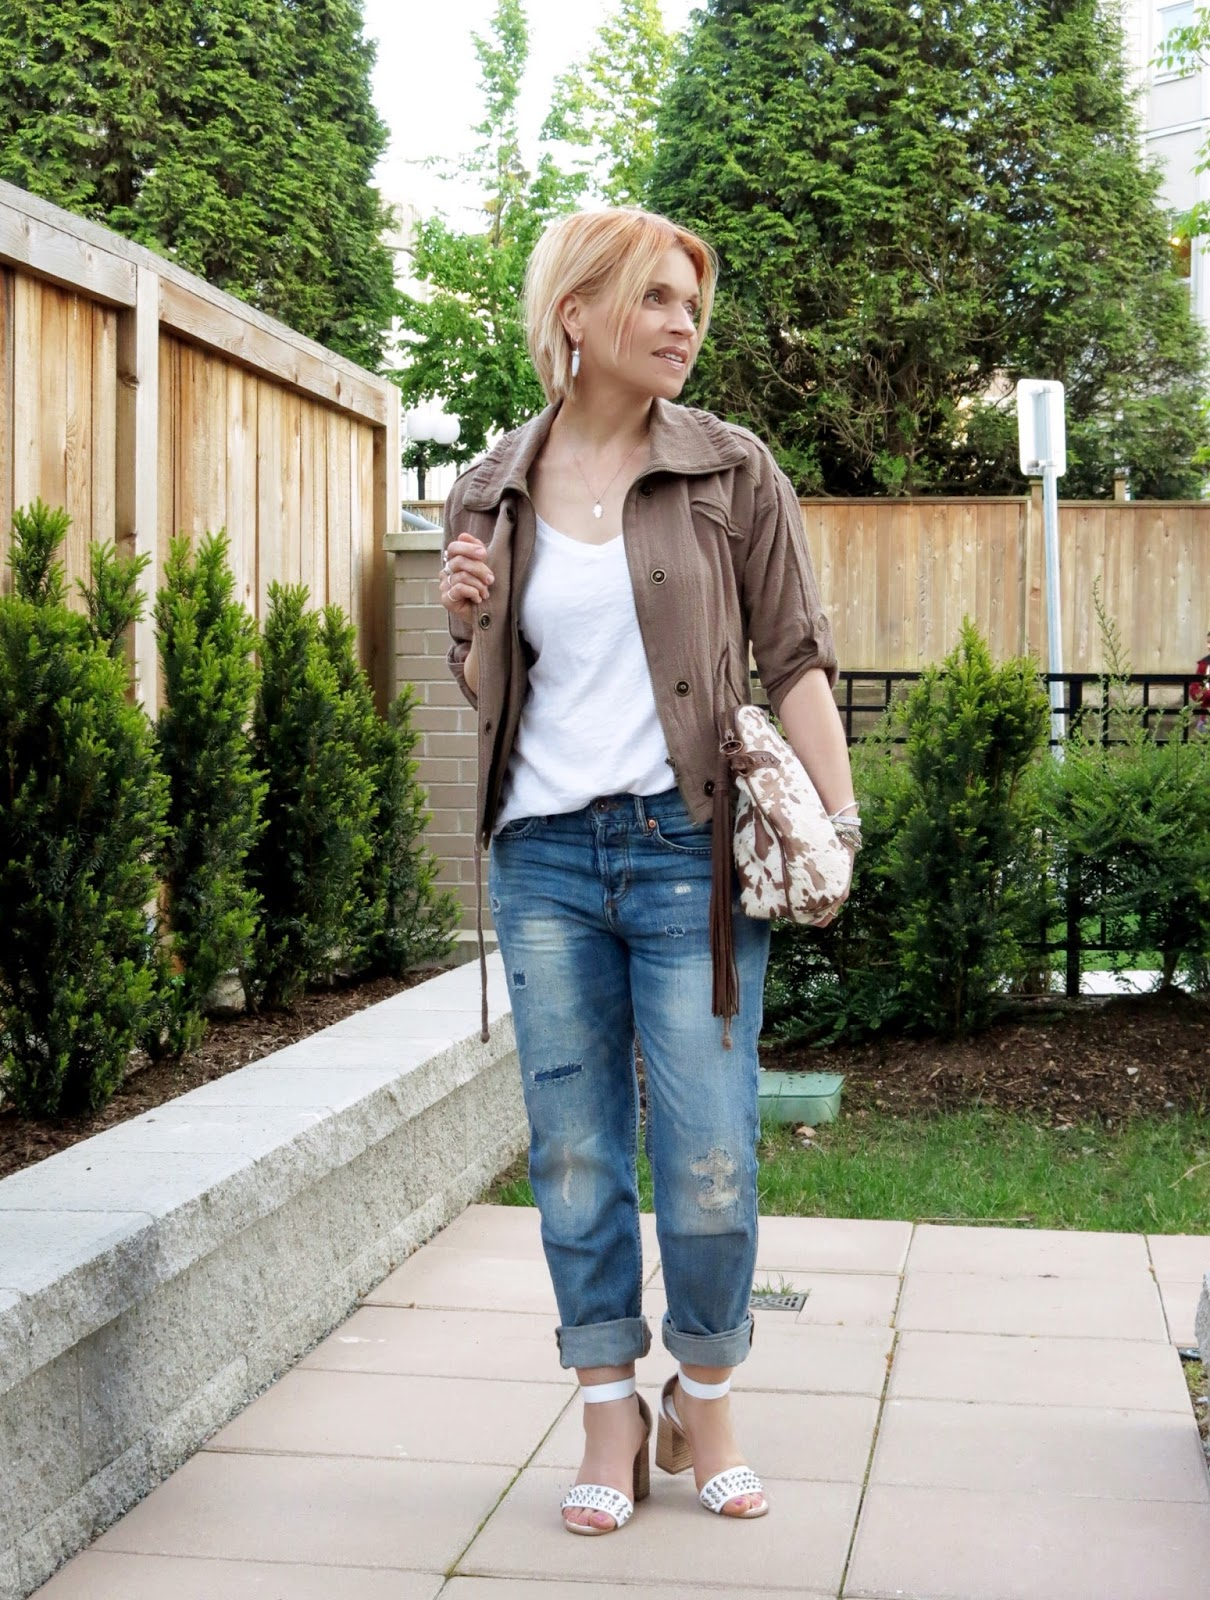 styling a slouchy tee and boyfriend jeans with a bomber jacket and ankle-strap sandals